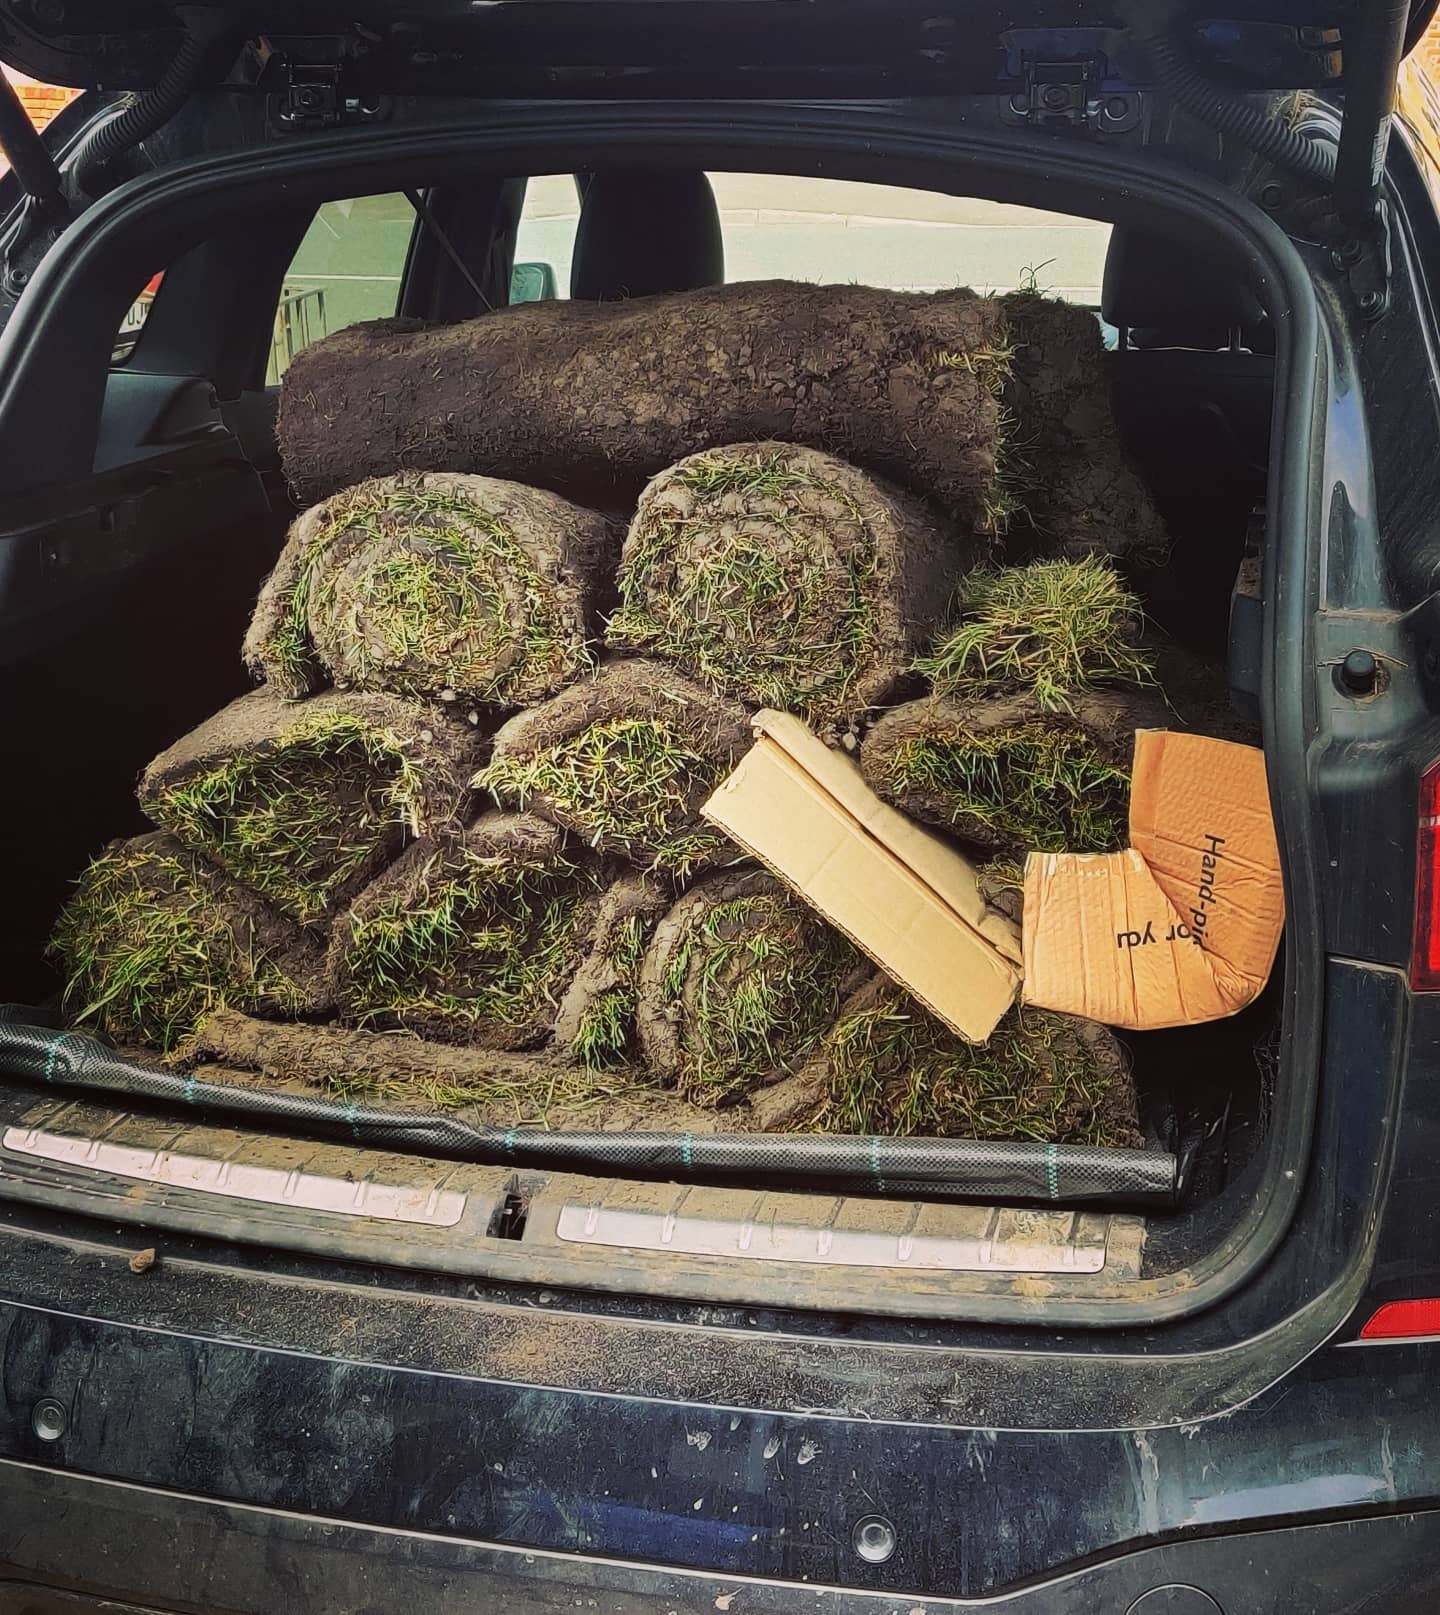 Can't begin to express what a relief it was not to get pulled over by the po-po on Sunday while rollin'round the manor in my SUV with a boot full of grass #supergreen #noweed #myhometurf #sod #etc